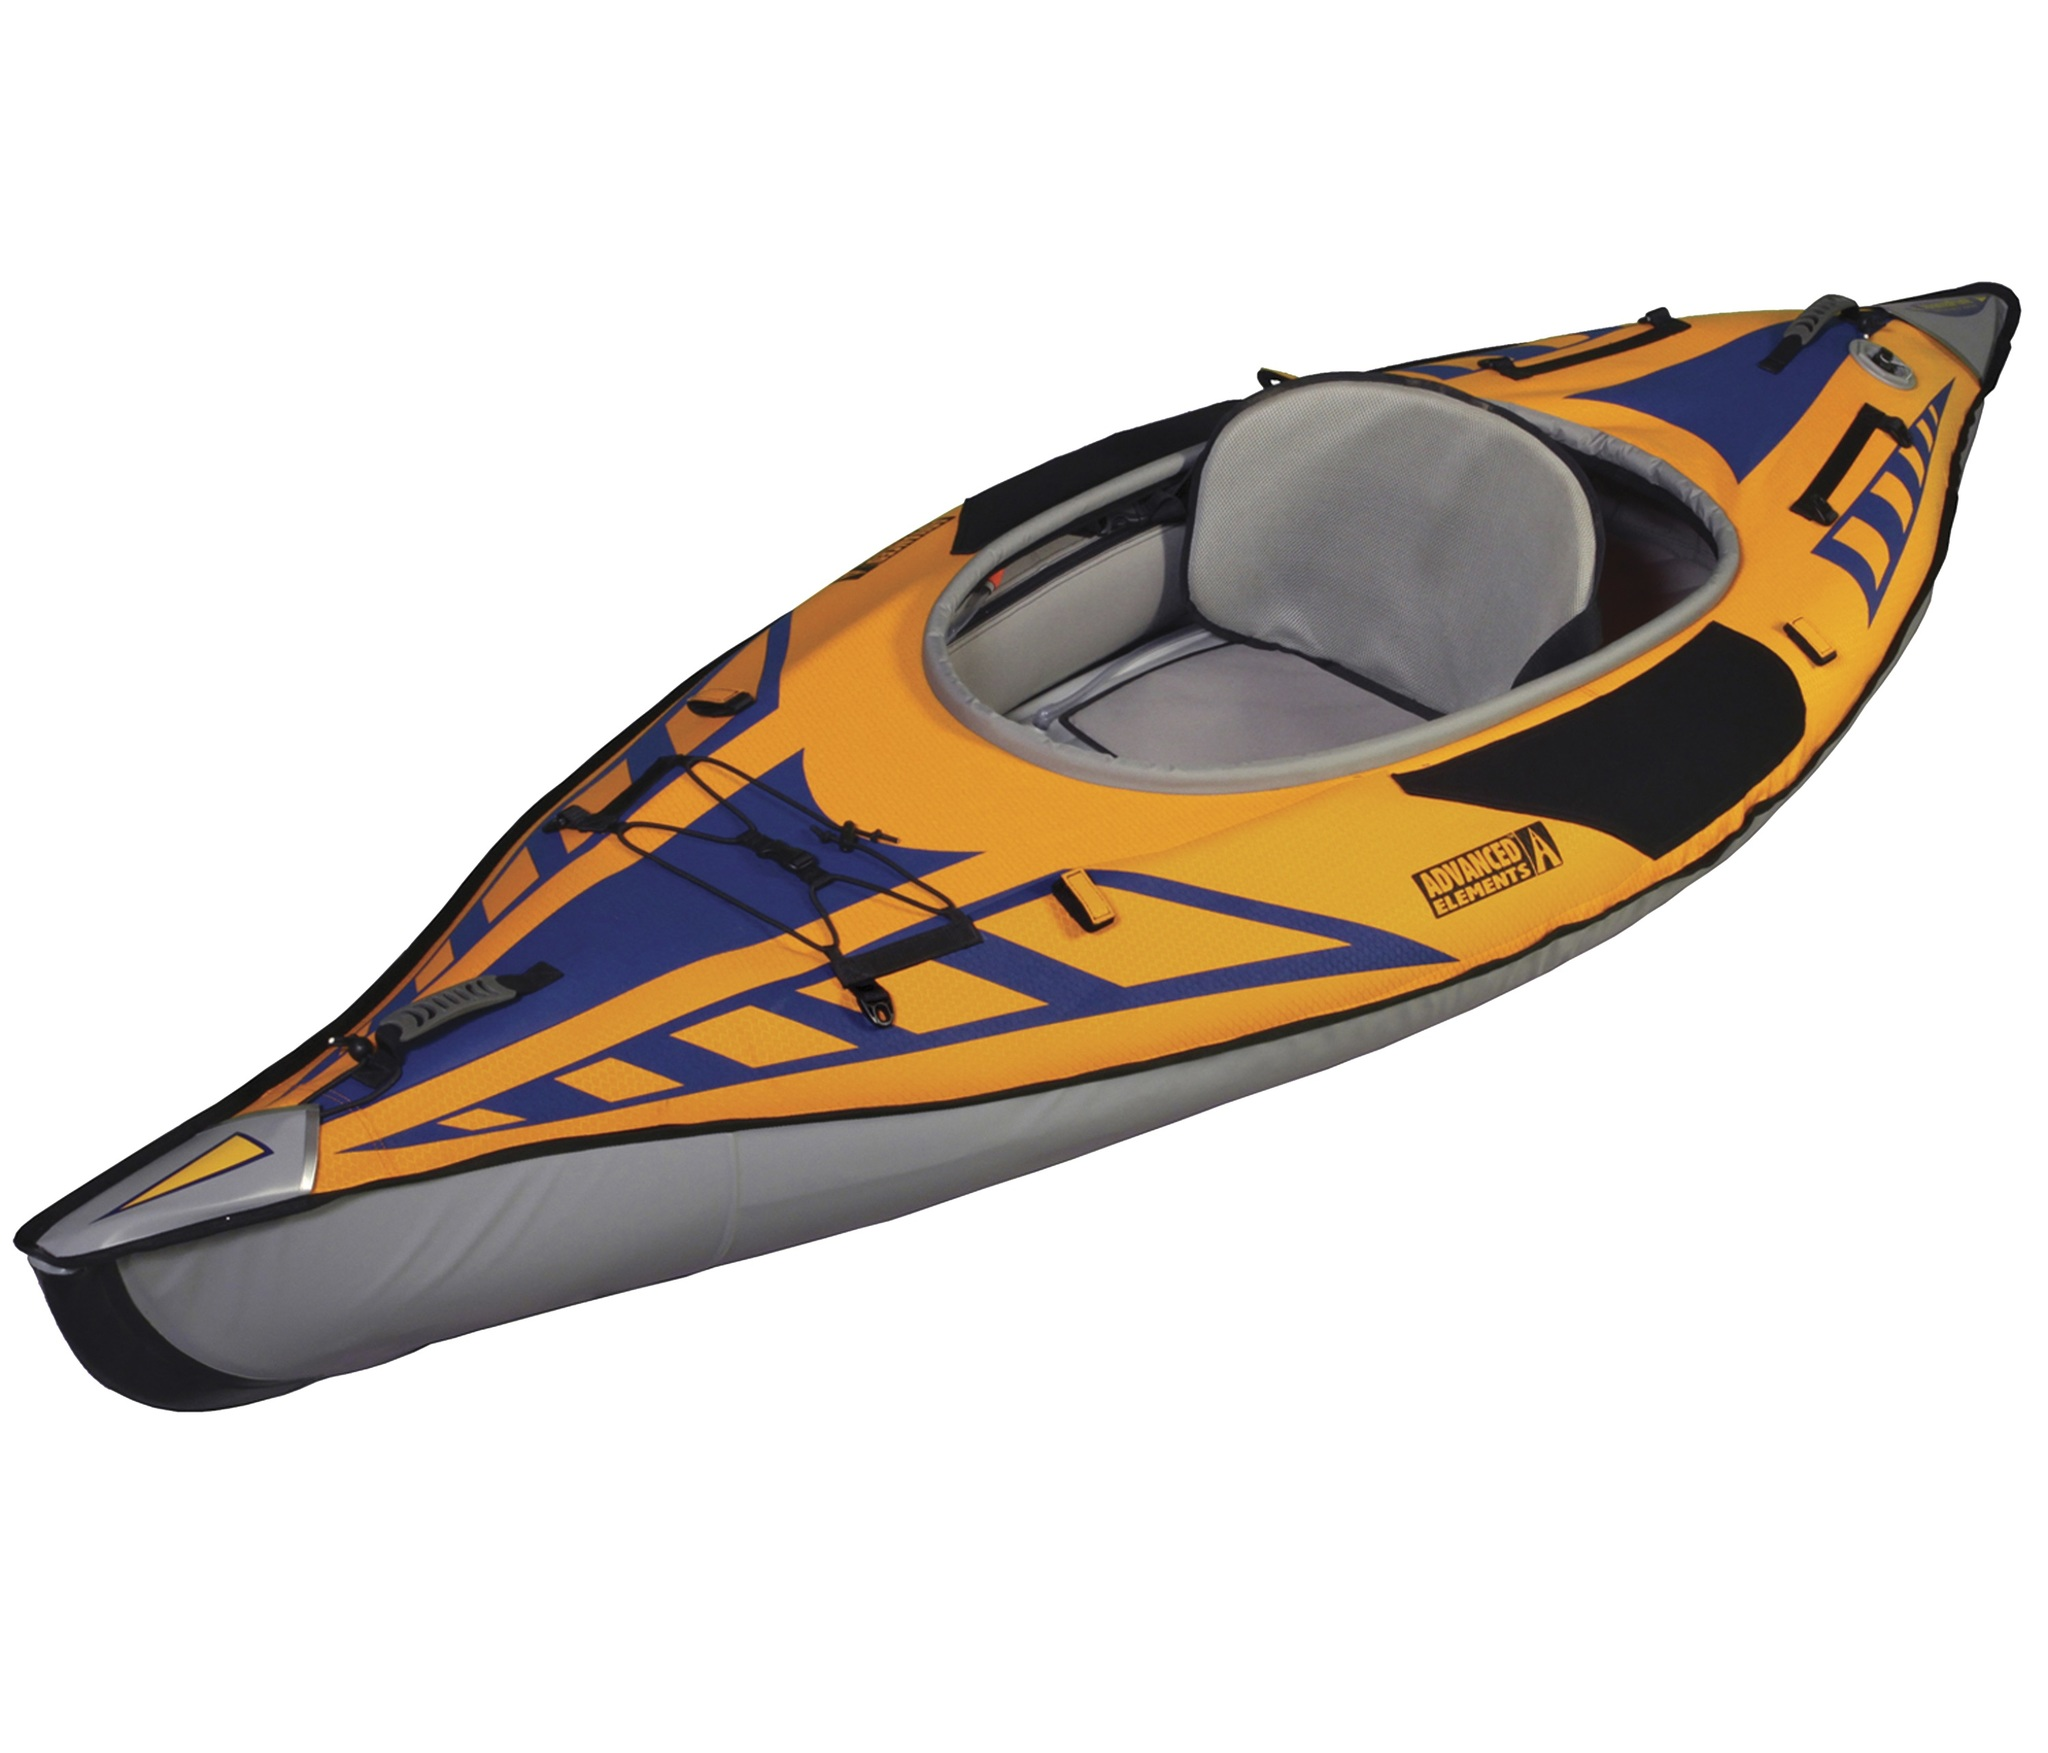 Day Touring Advancedframe® sport inflatable kayak, single